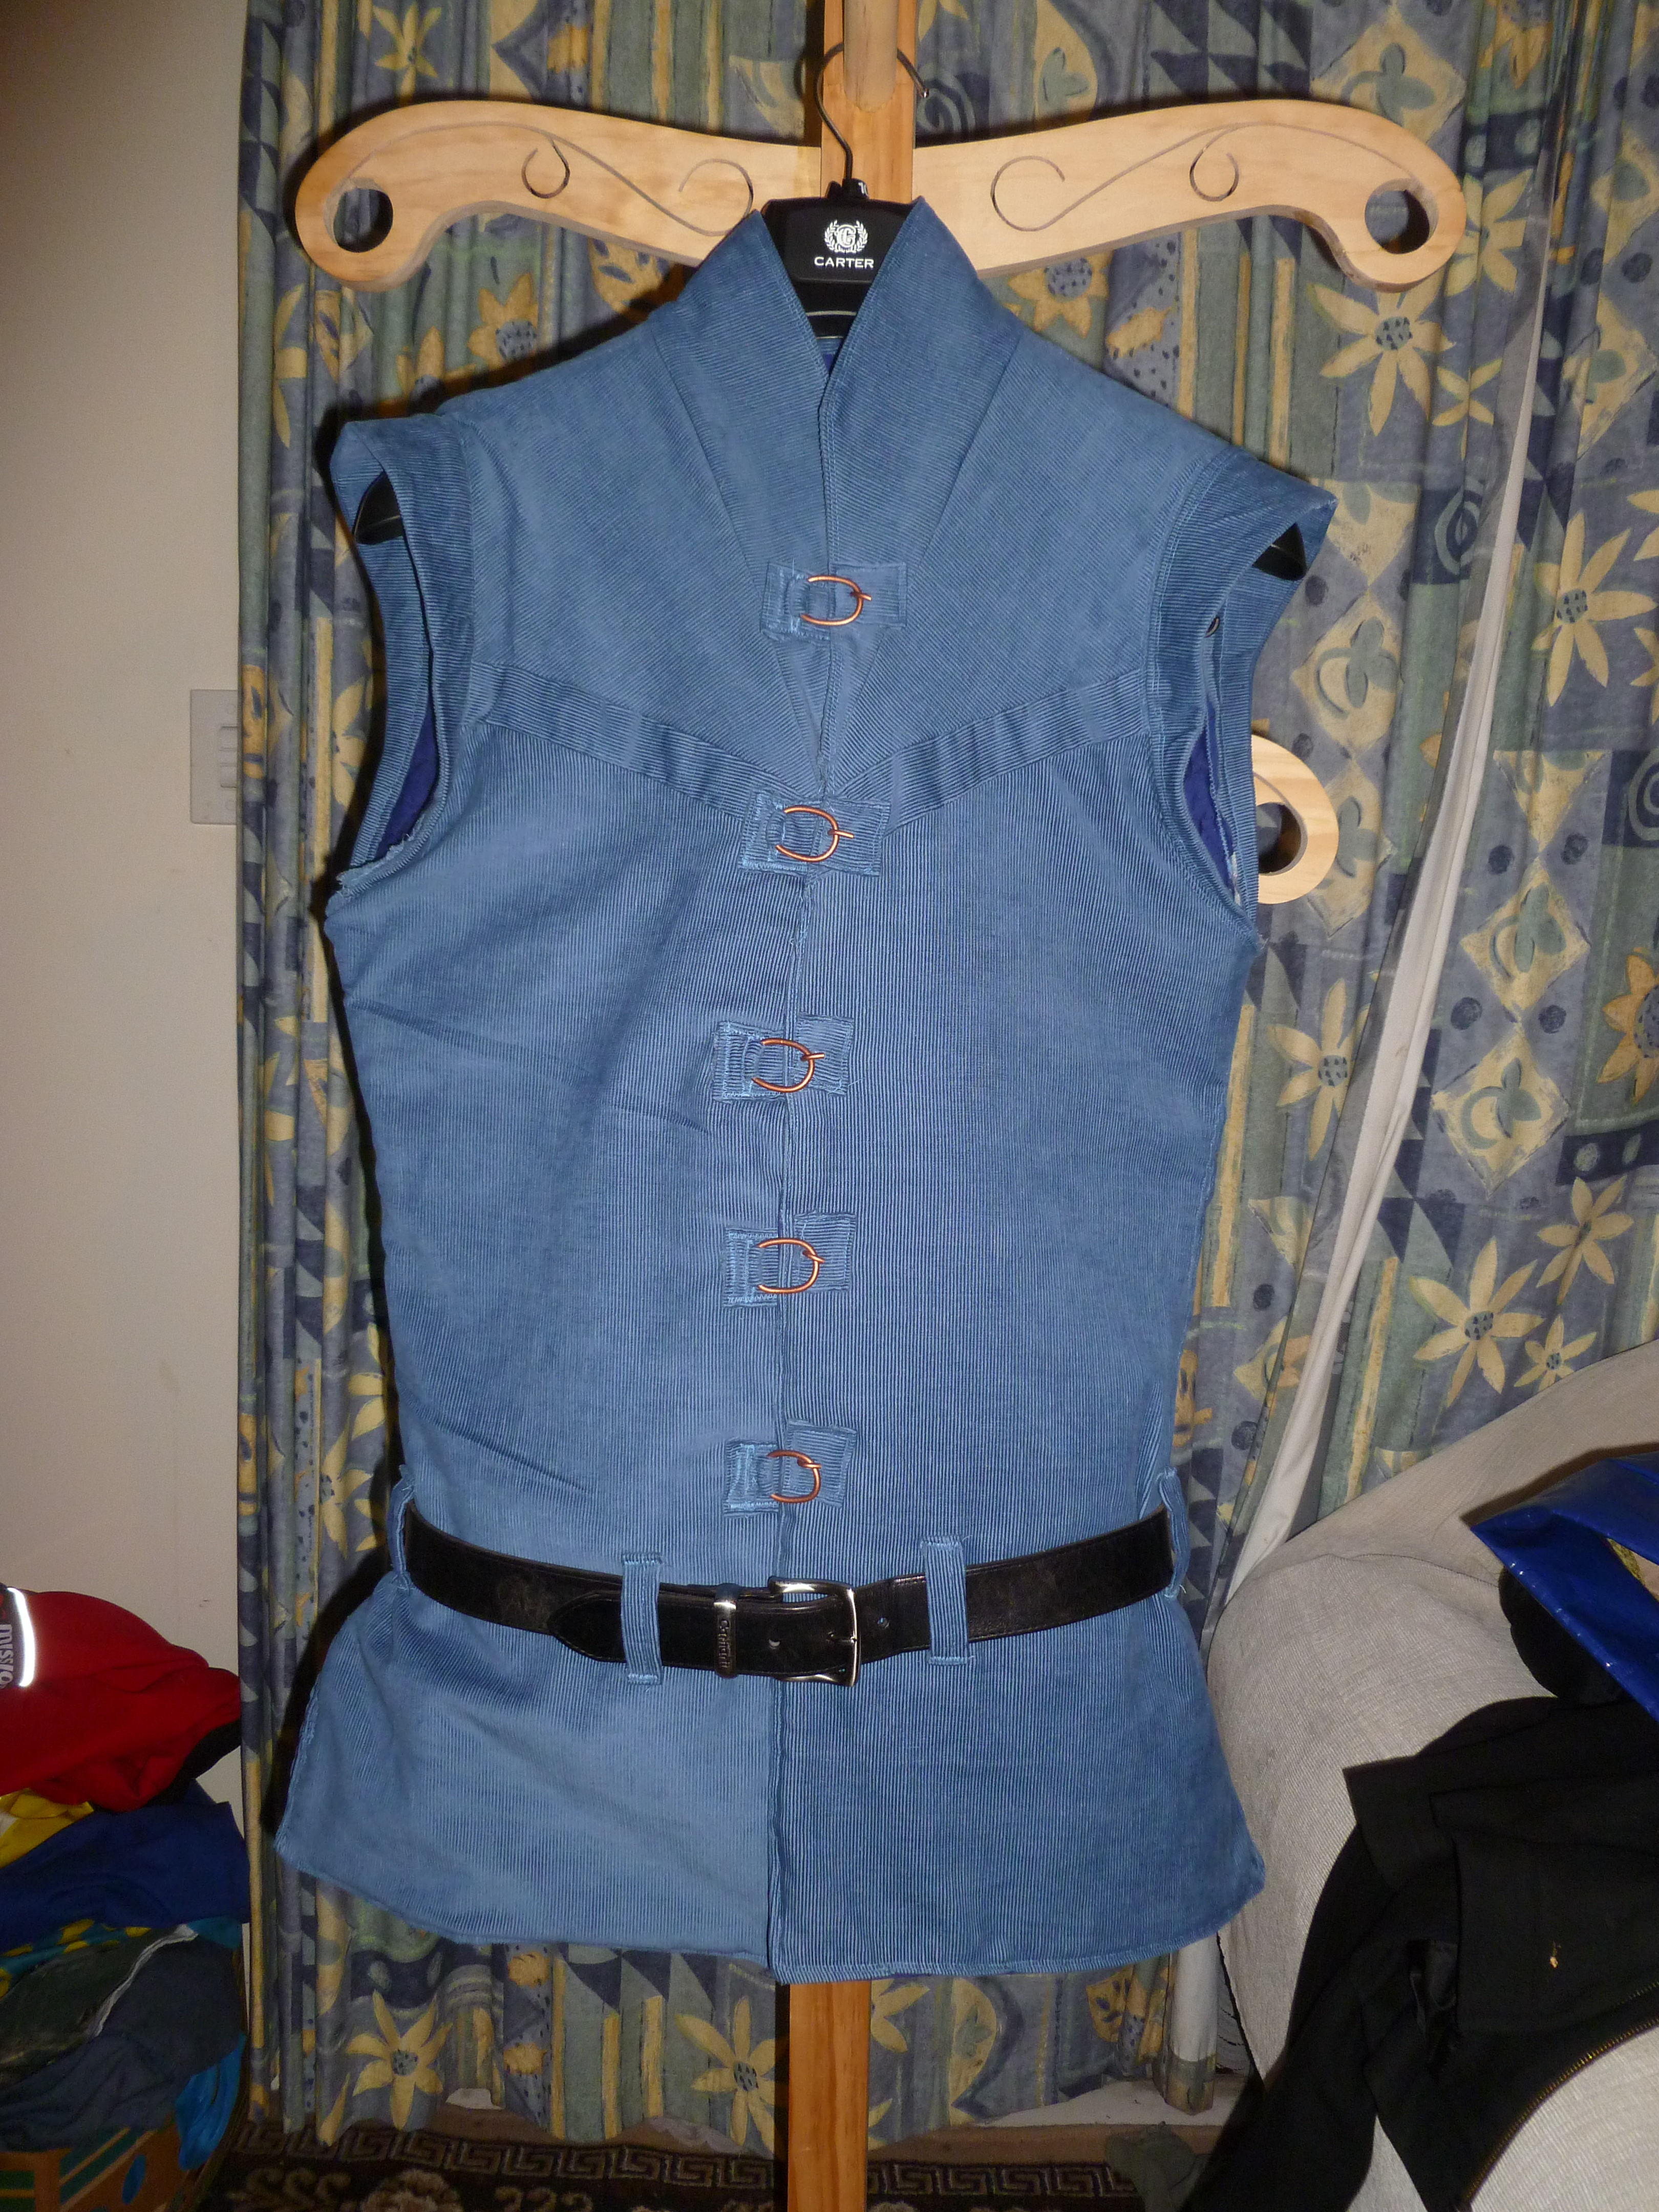 Picture of Flynn Rider Vest From Tangled